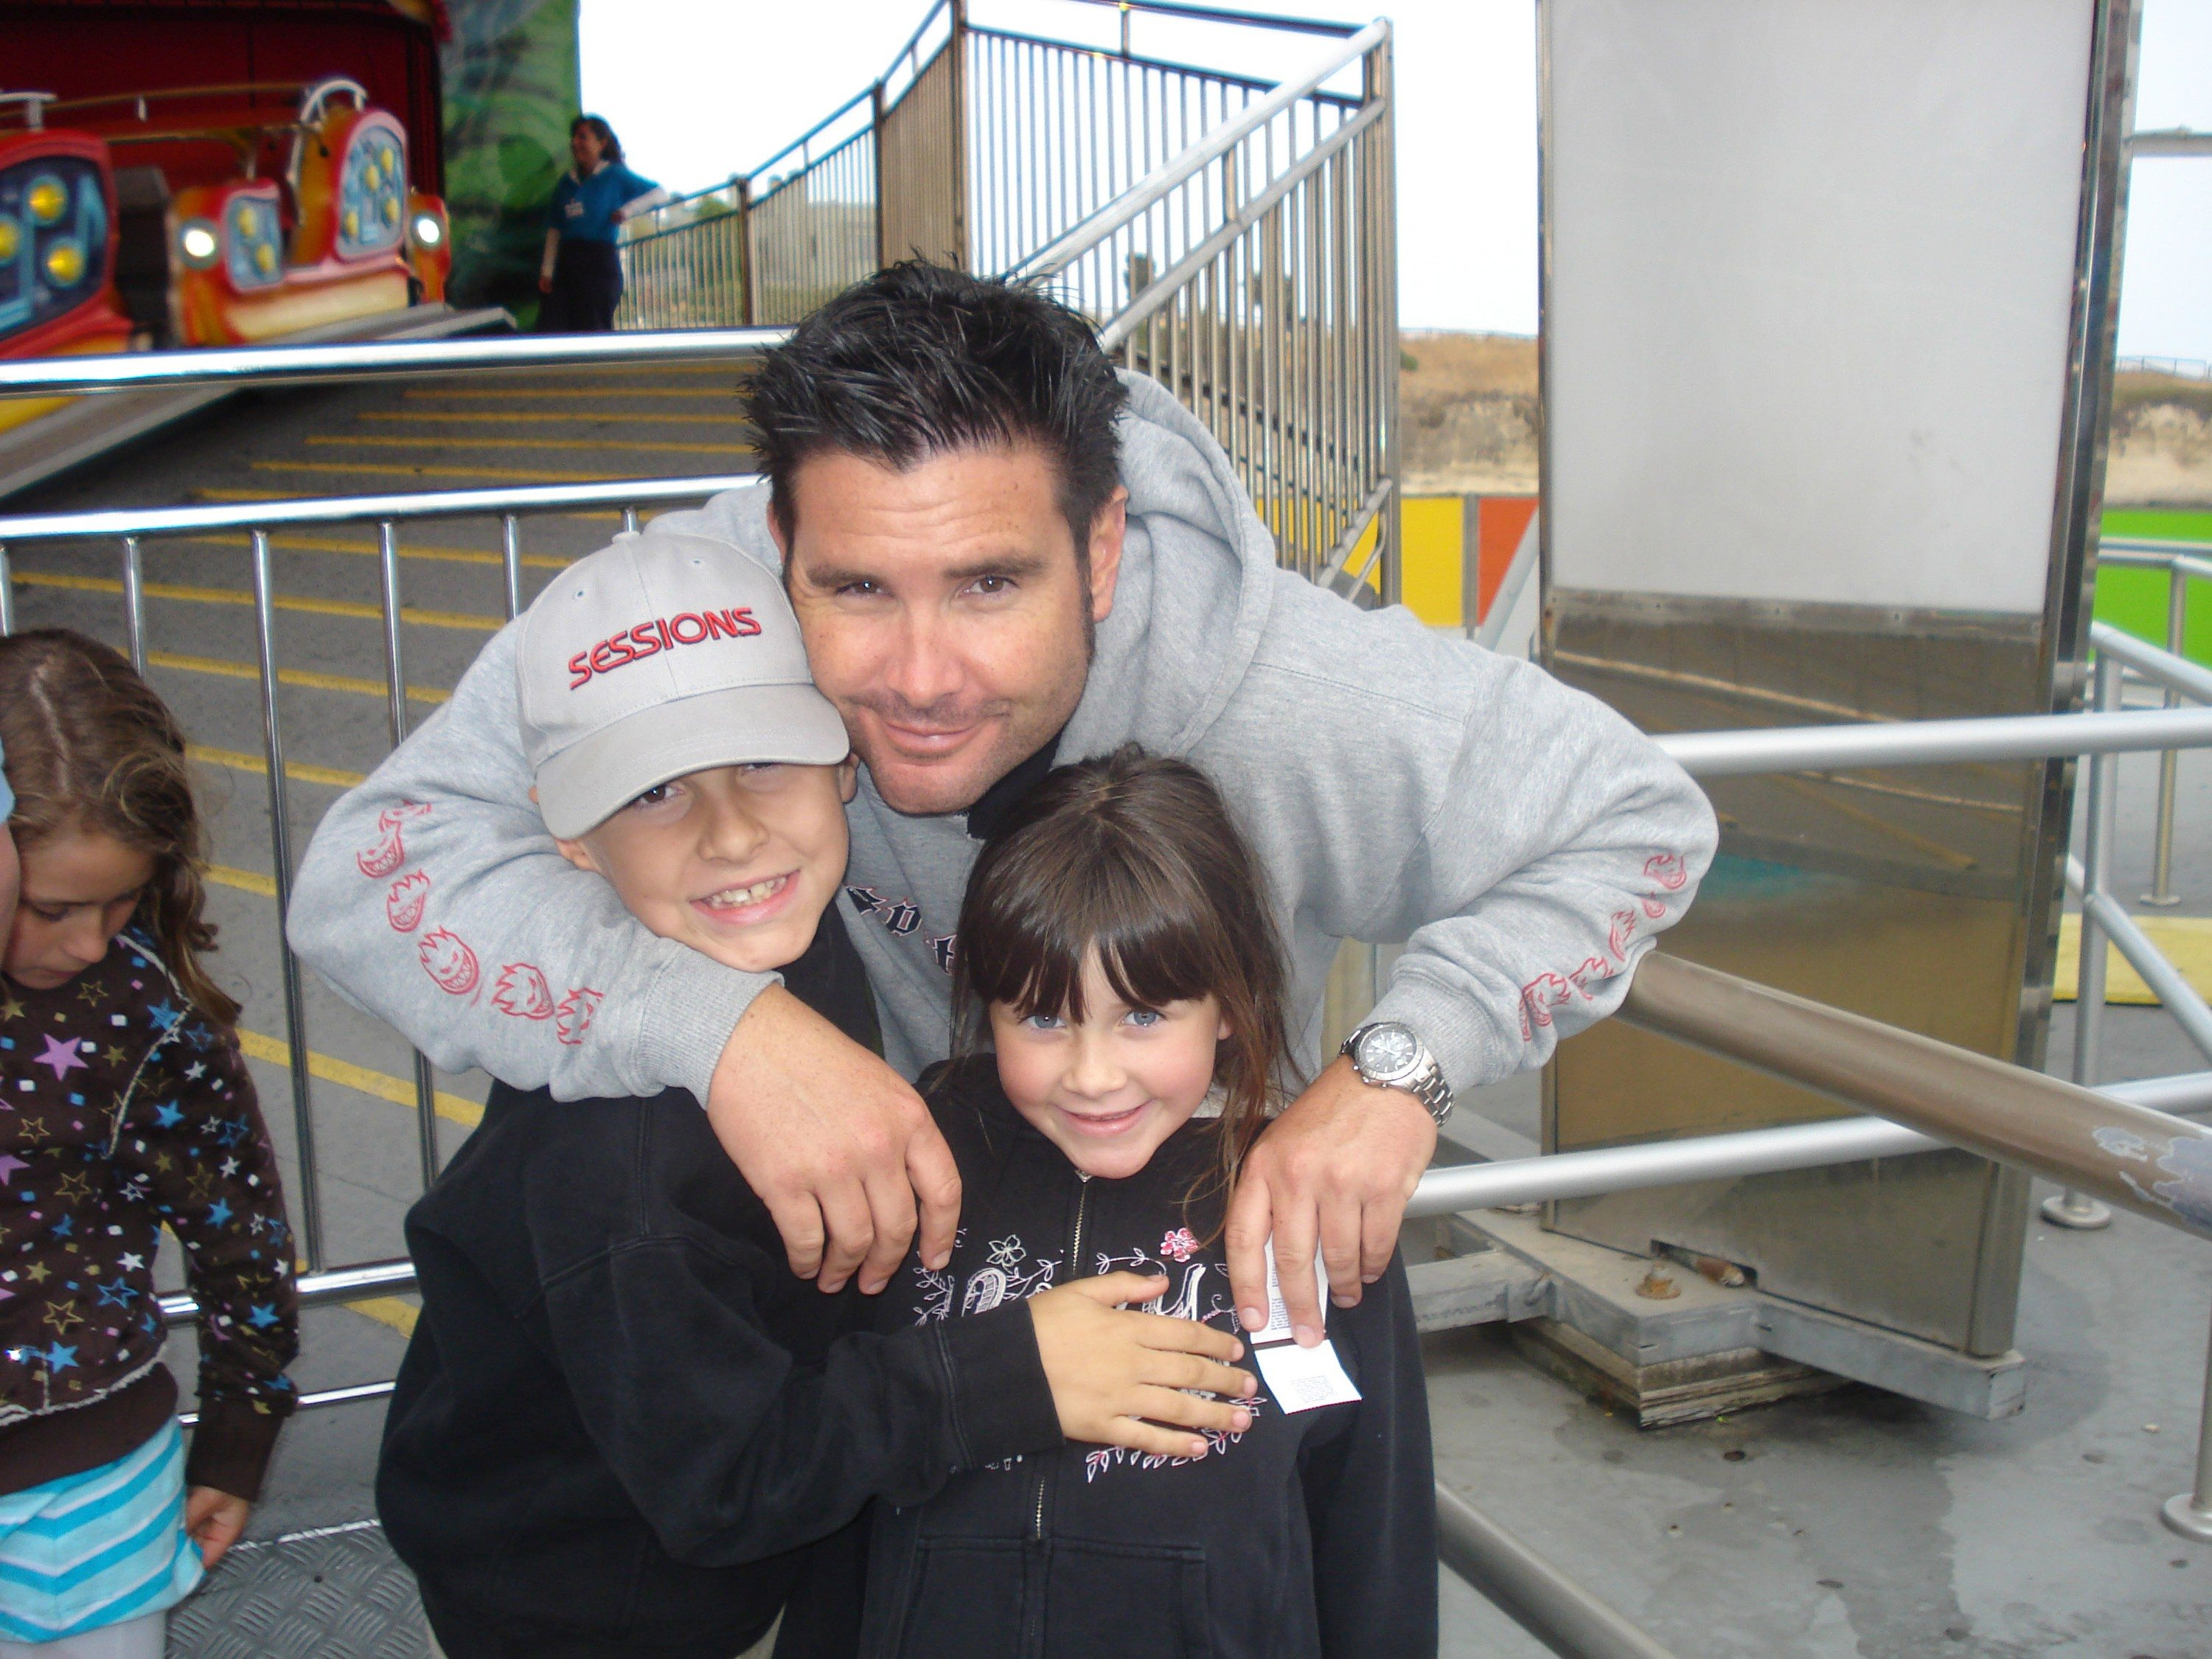 AP Photo/John StowThis undated image shows Bryan Stow holding his 12-year-old son and 8-year-old daughter.